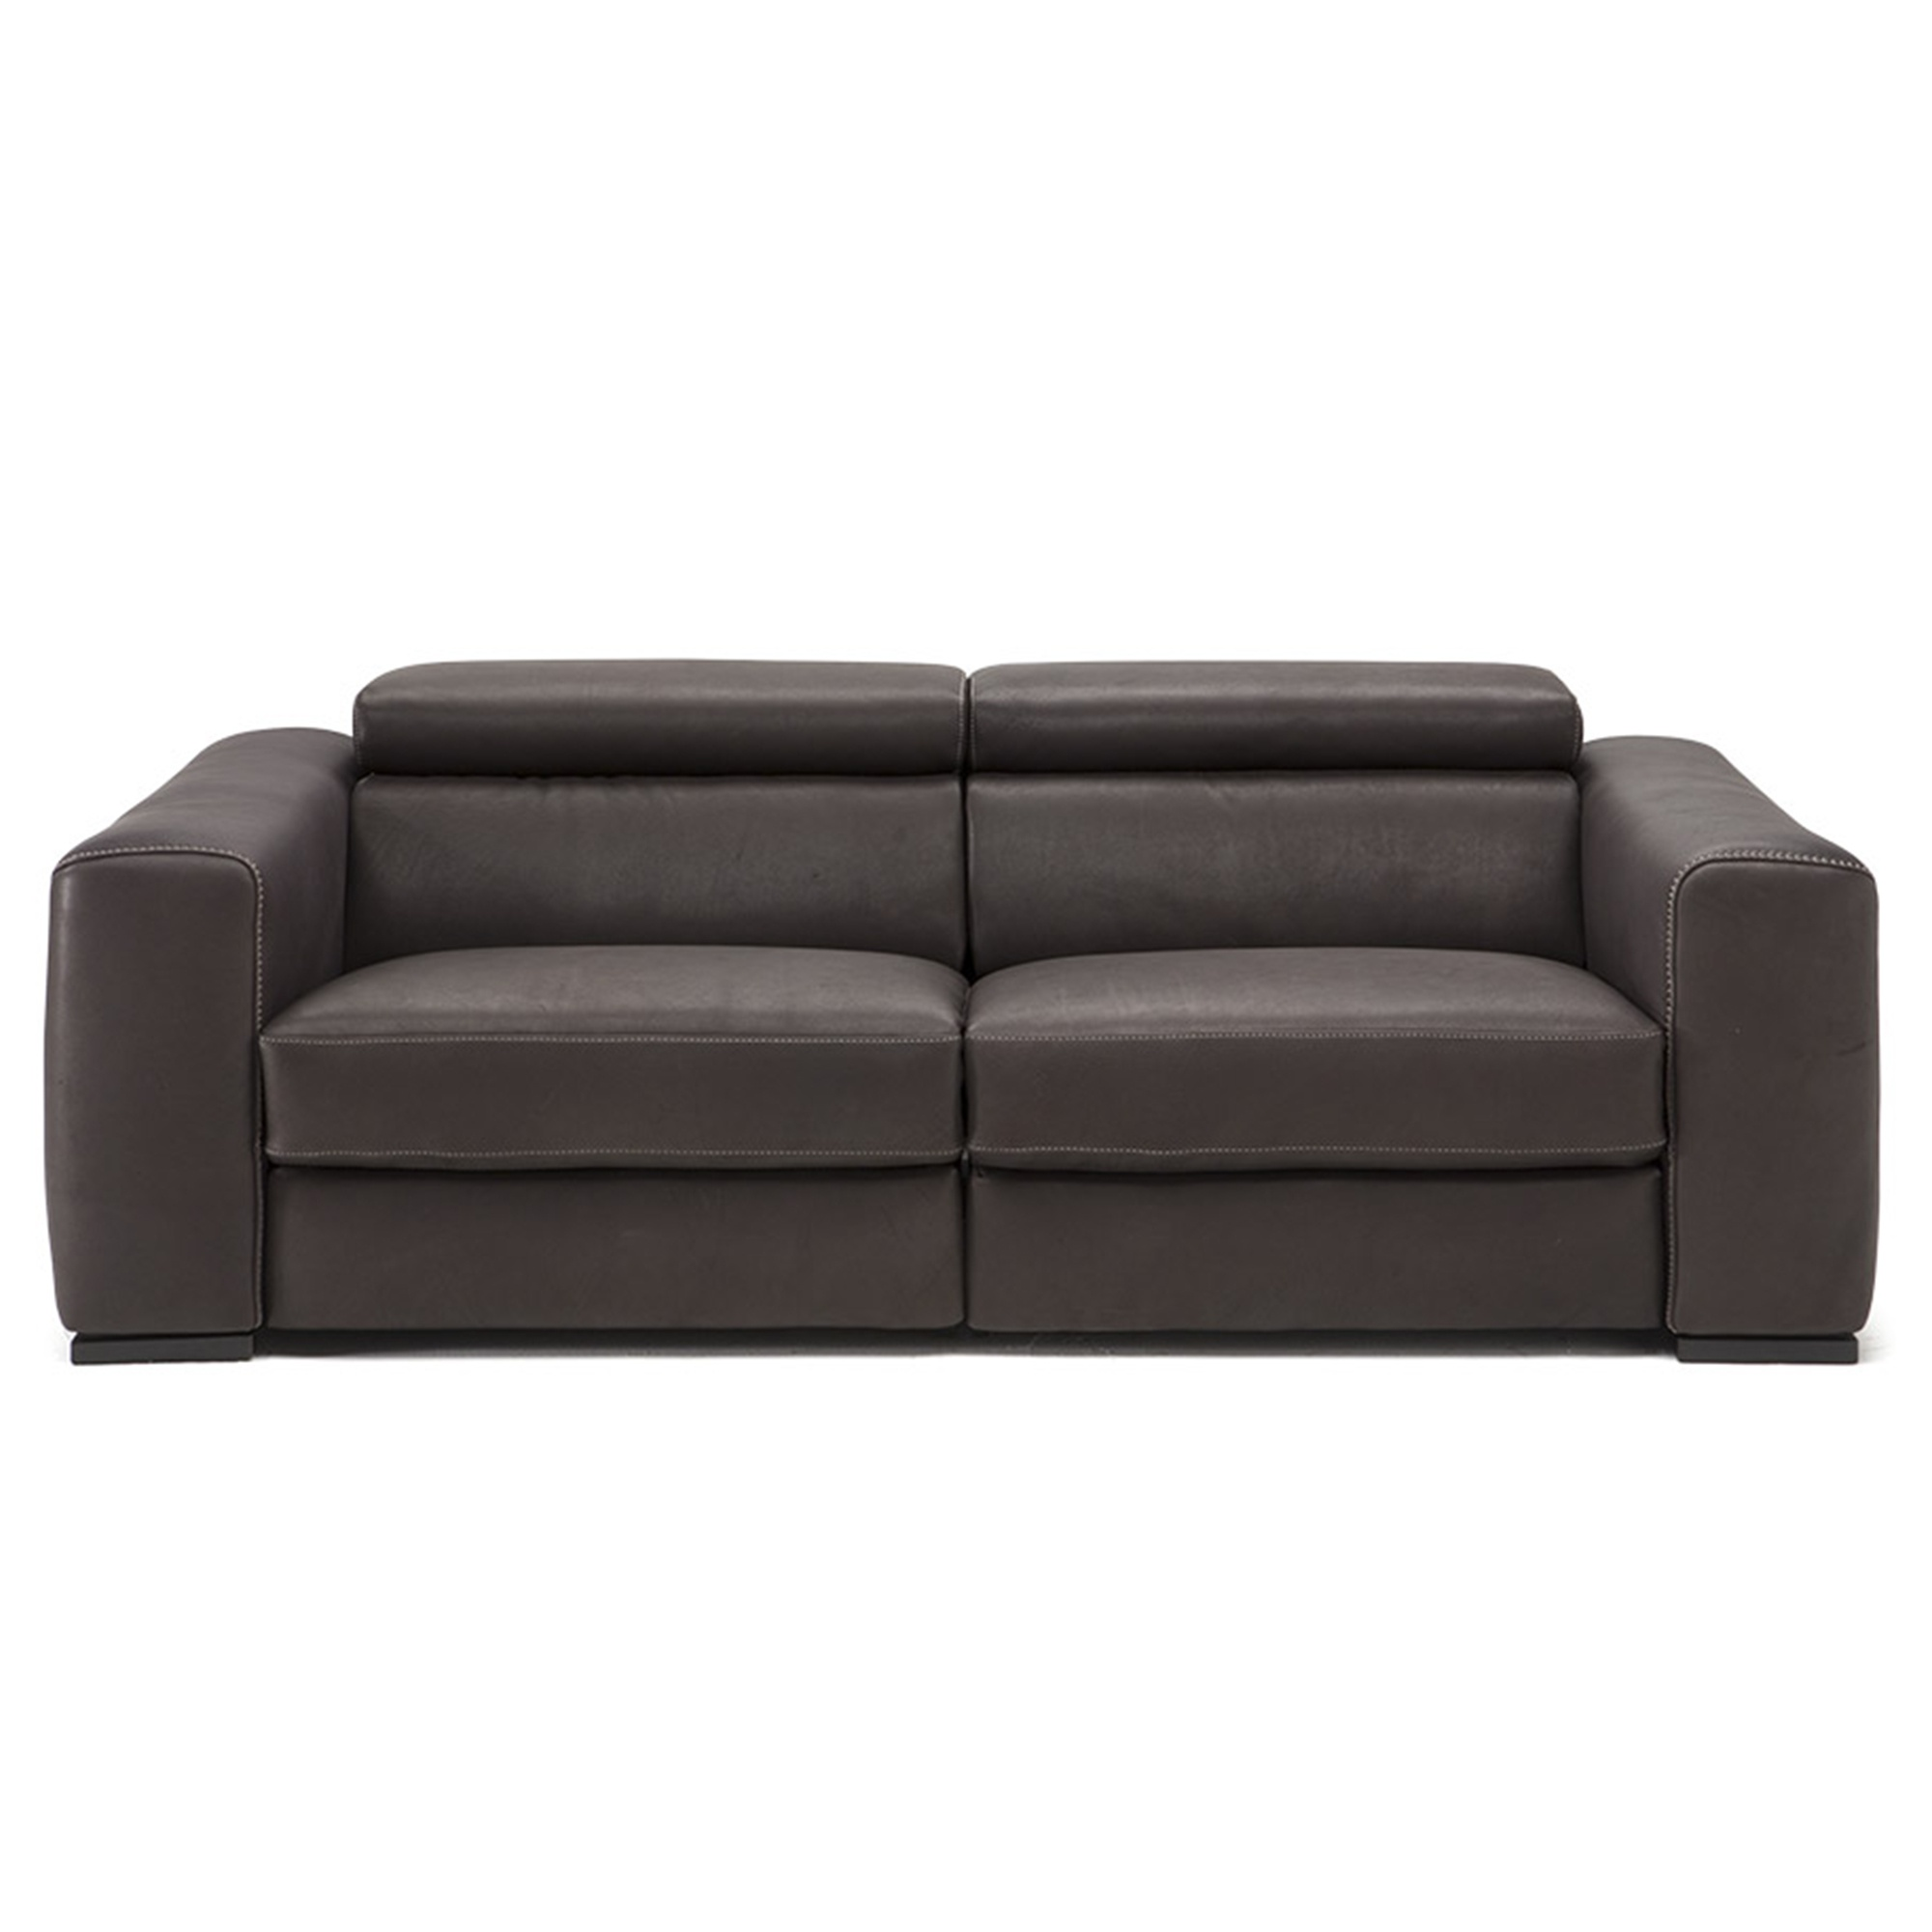 Natuzzi Editions Maestro Large Sofa Natuzzi Editions Cookes Furniture